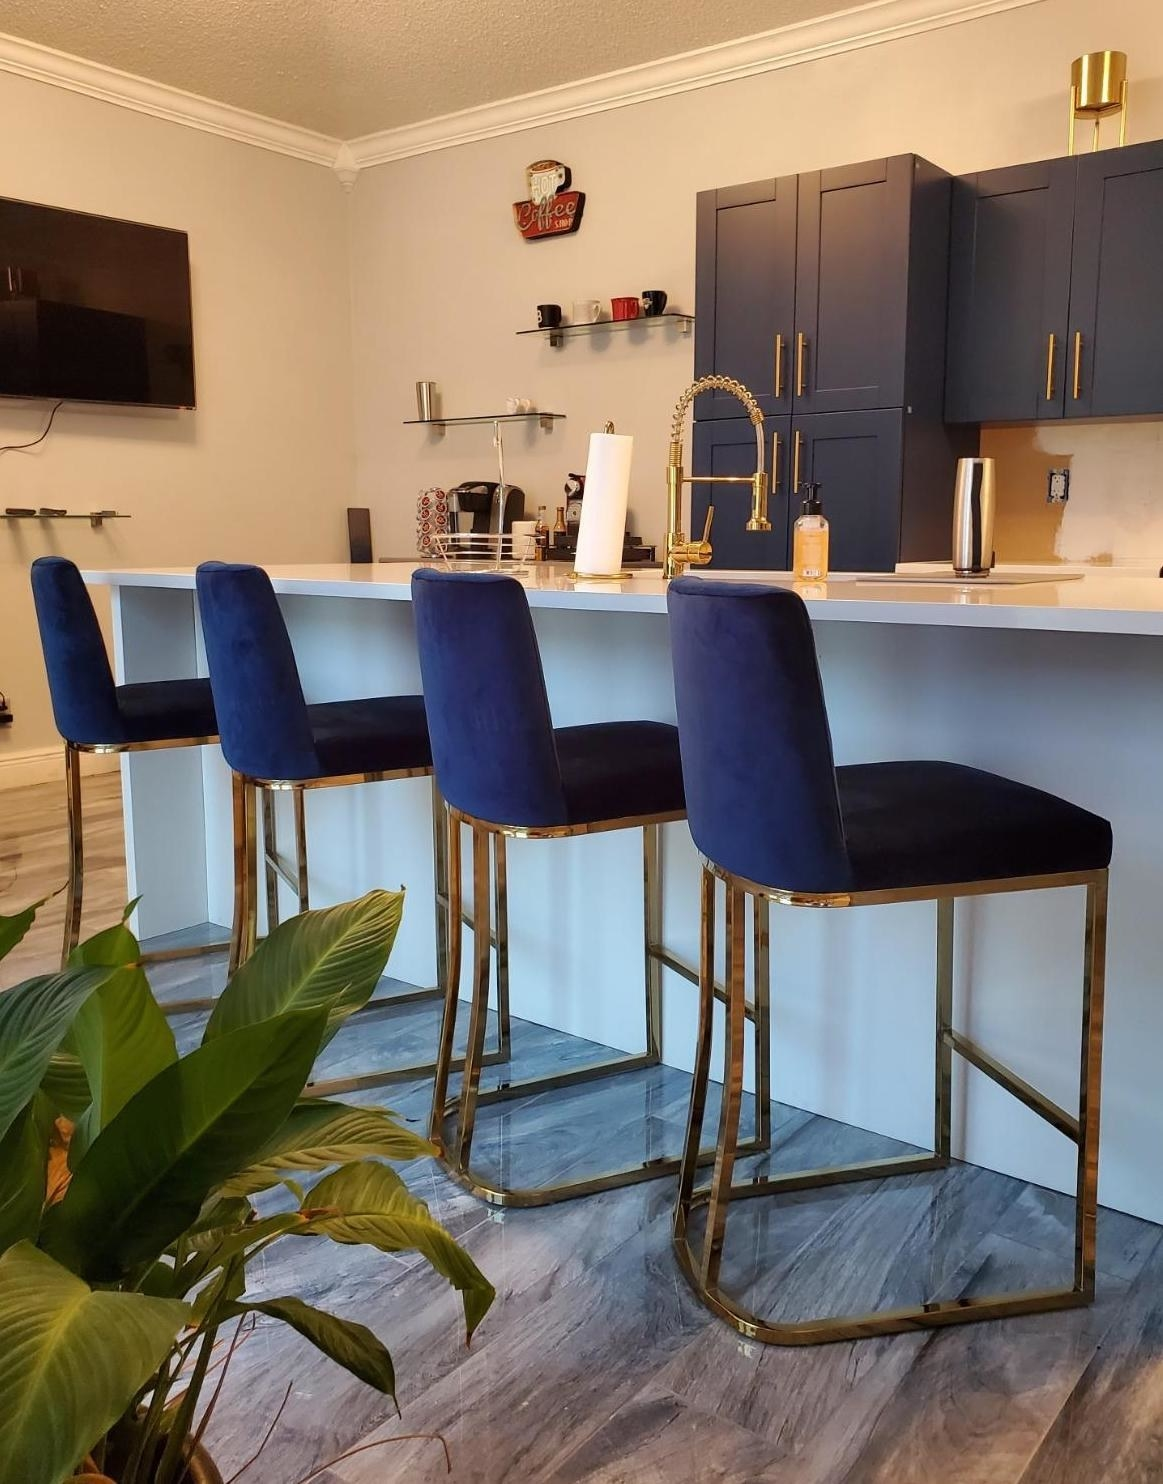 Reviewer's navy blue and gold bar stools are shown in the kitchen